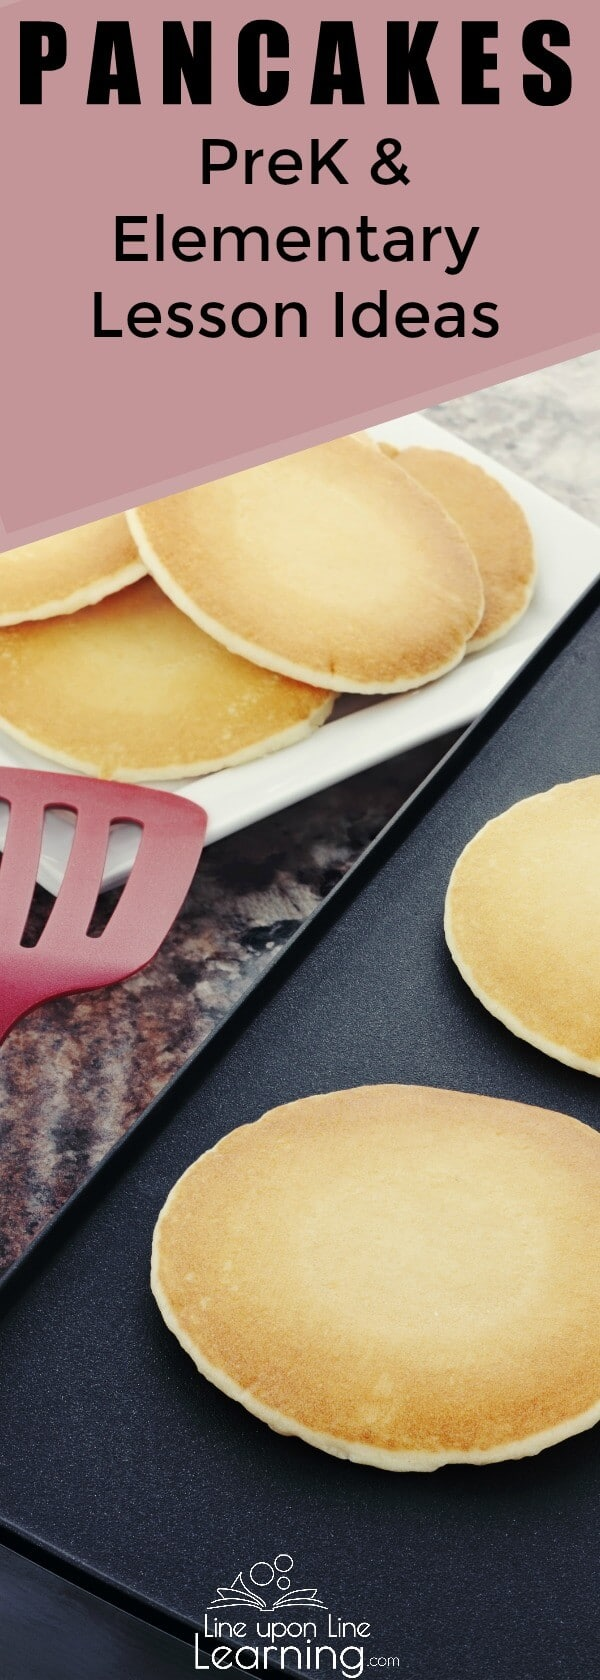 Pancakes can be a fun learning subject for everyone from preK to early elementary school. Practice mathematics, learn cooking skills, and imagine great treats on top! Check out these pancake lesson ideas!